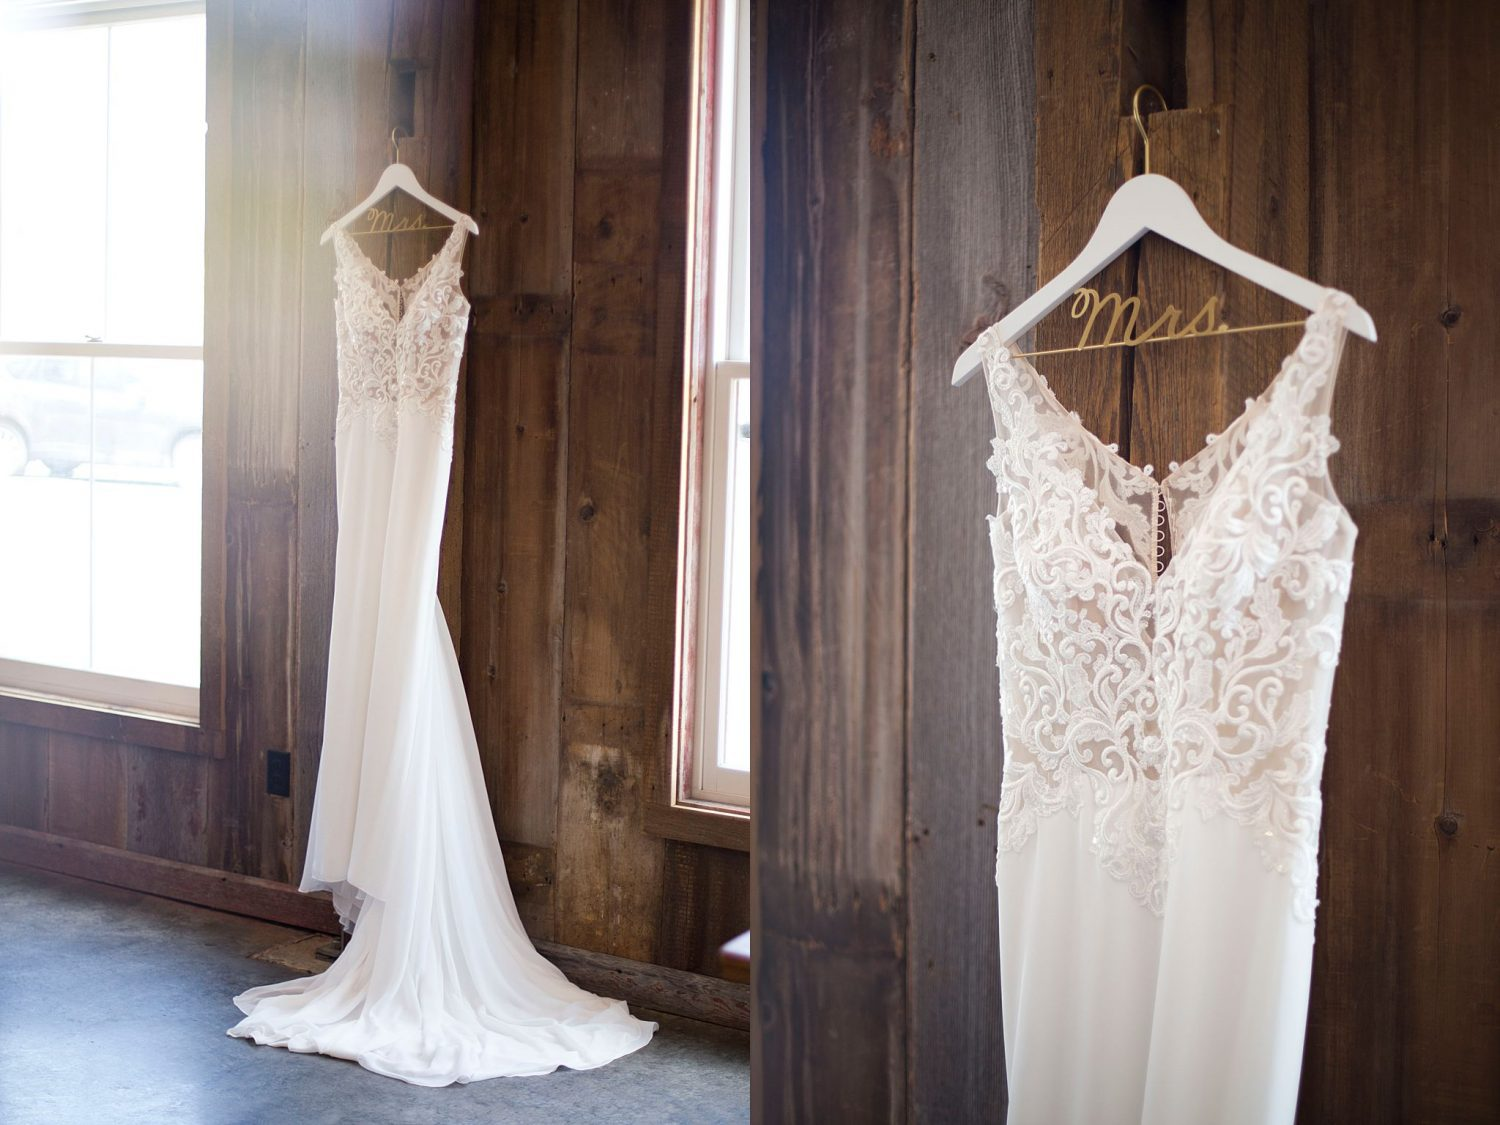 white wedding dress hangs on barnwood paneled wall